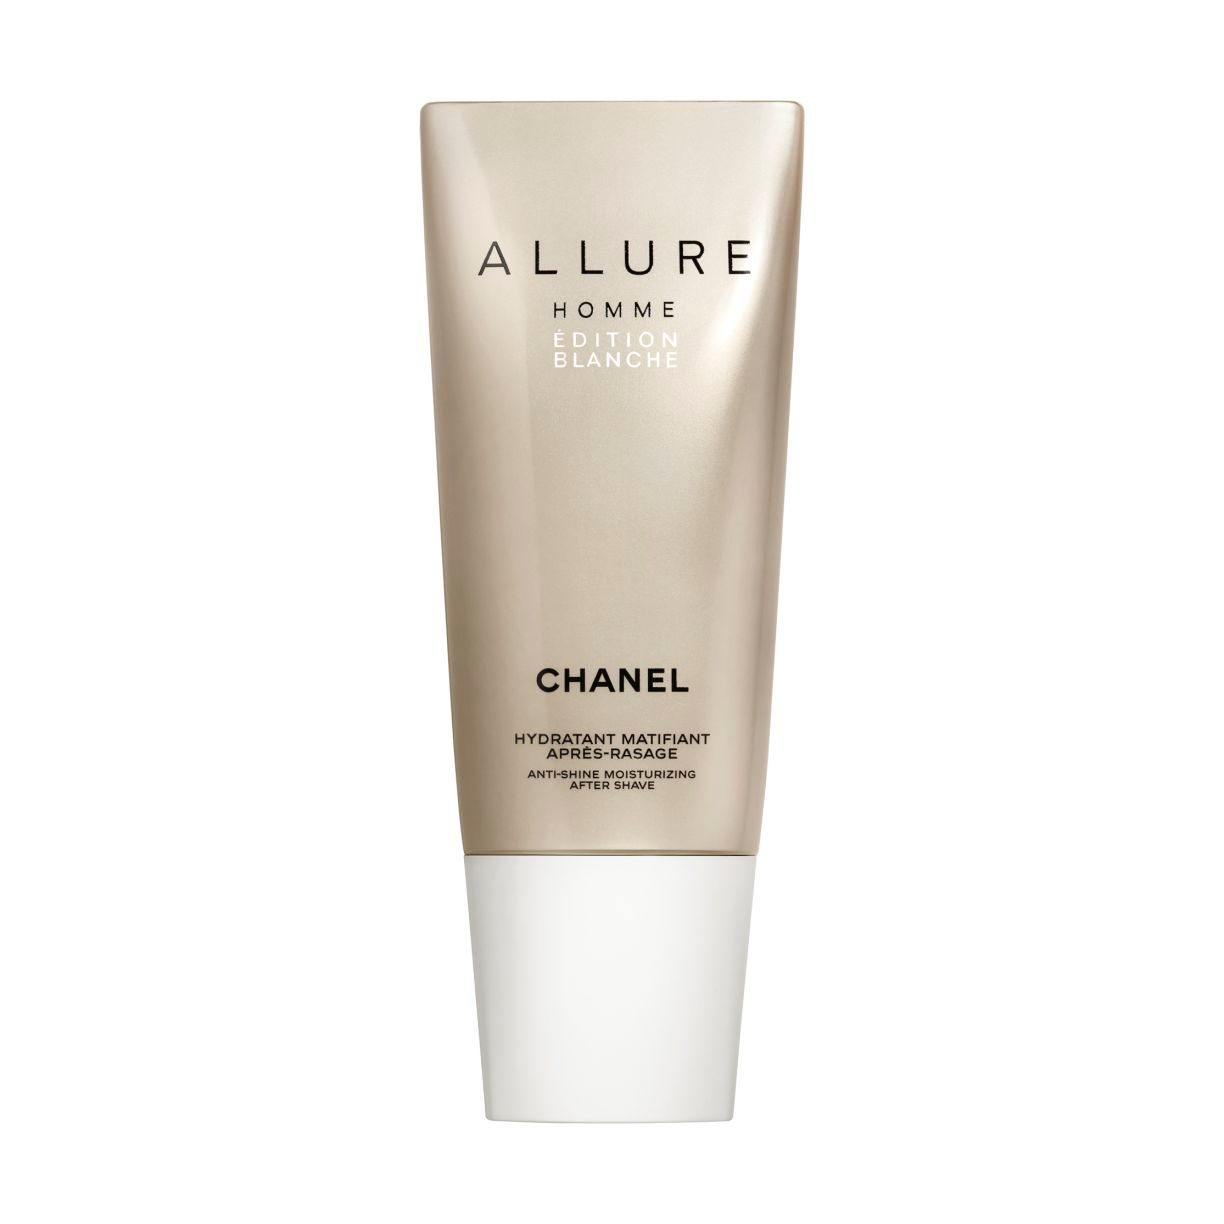 ALLURE HOMME ÉDITION BLANCHE MATTERENDE EN HYDRATERENDE AFTERSHAVE